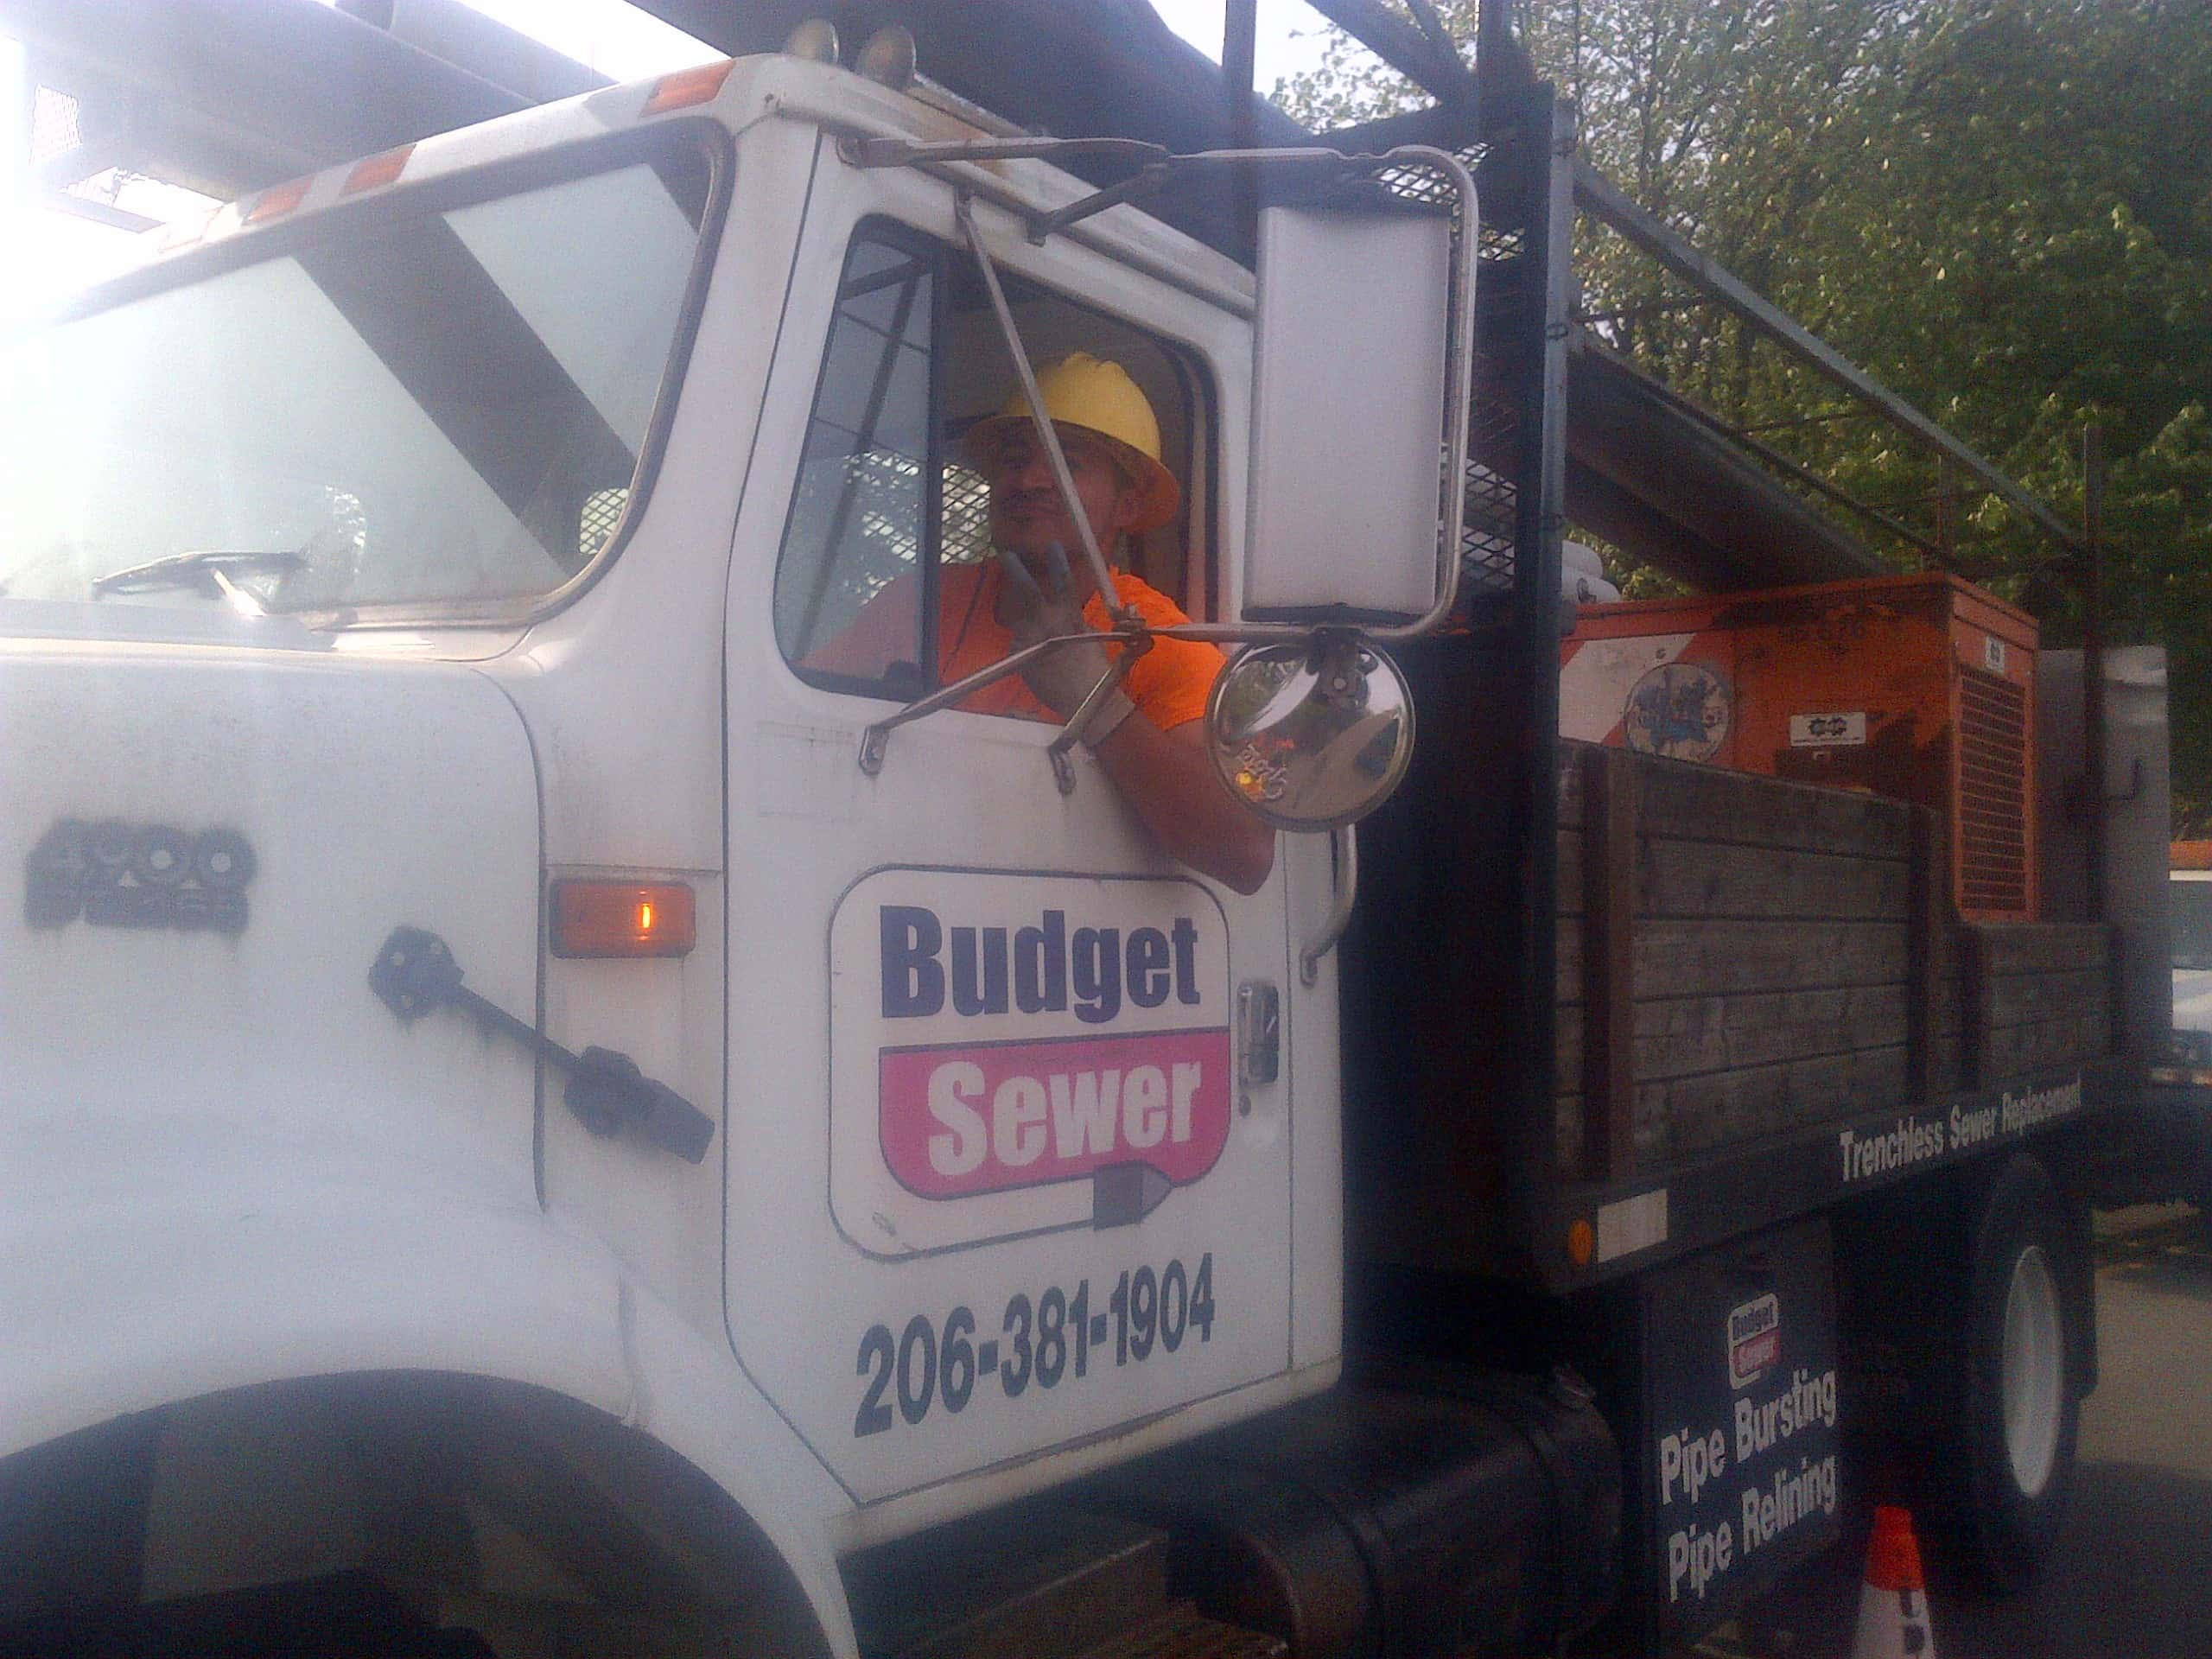 Budget Sewer Workers